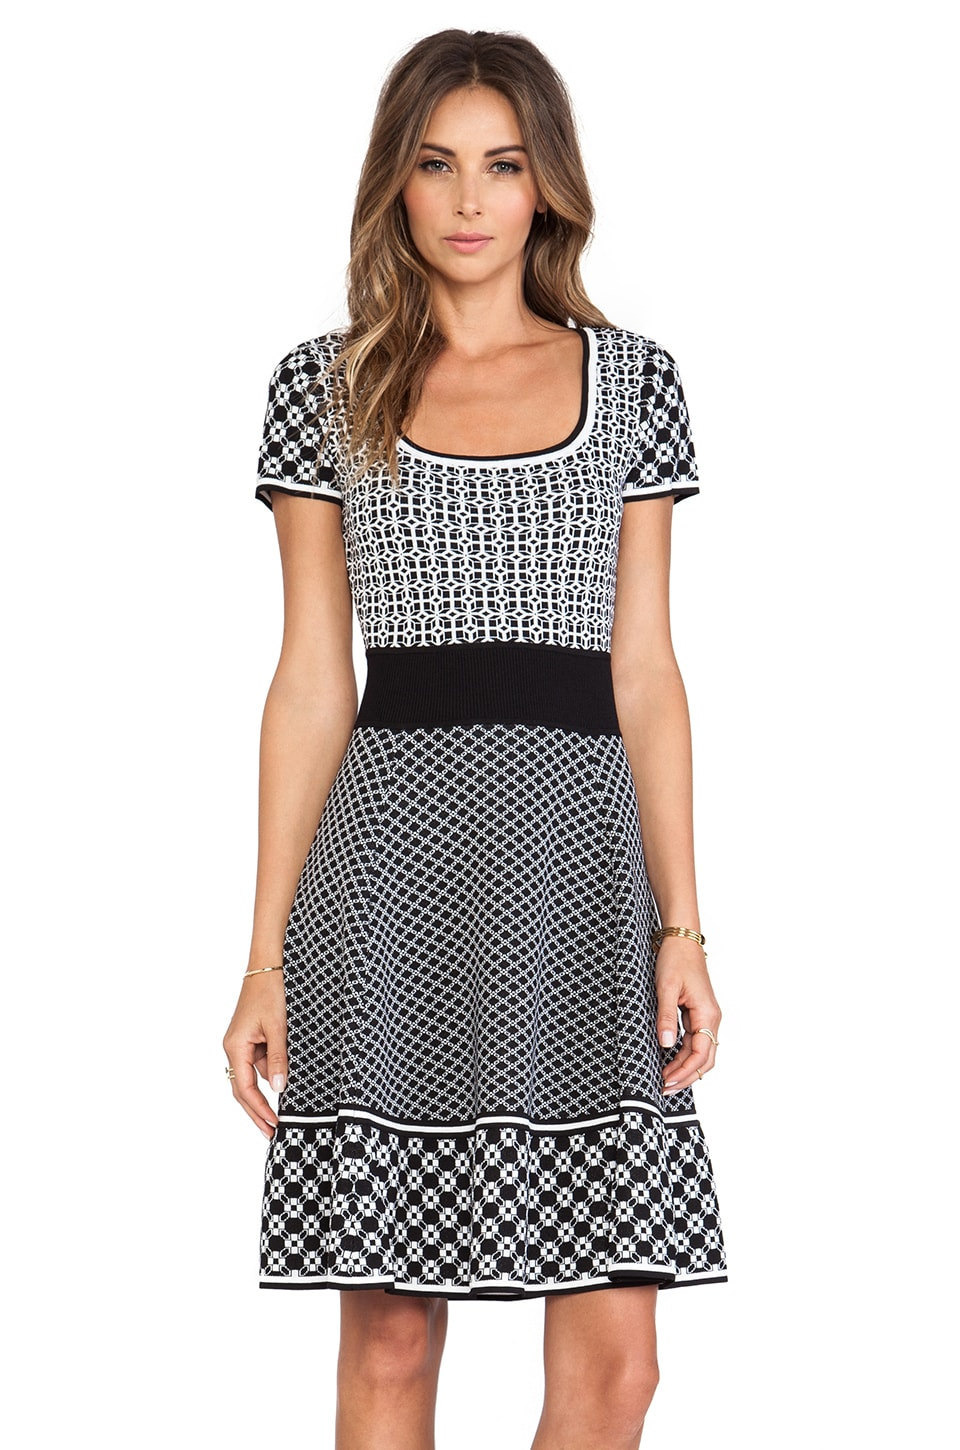 Catherine Malandrino Genevieve Fit & Flare Knit Jacquard Dress in Noir & Blanc